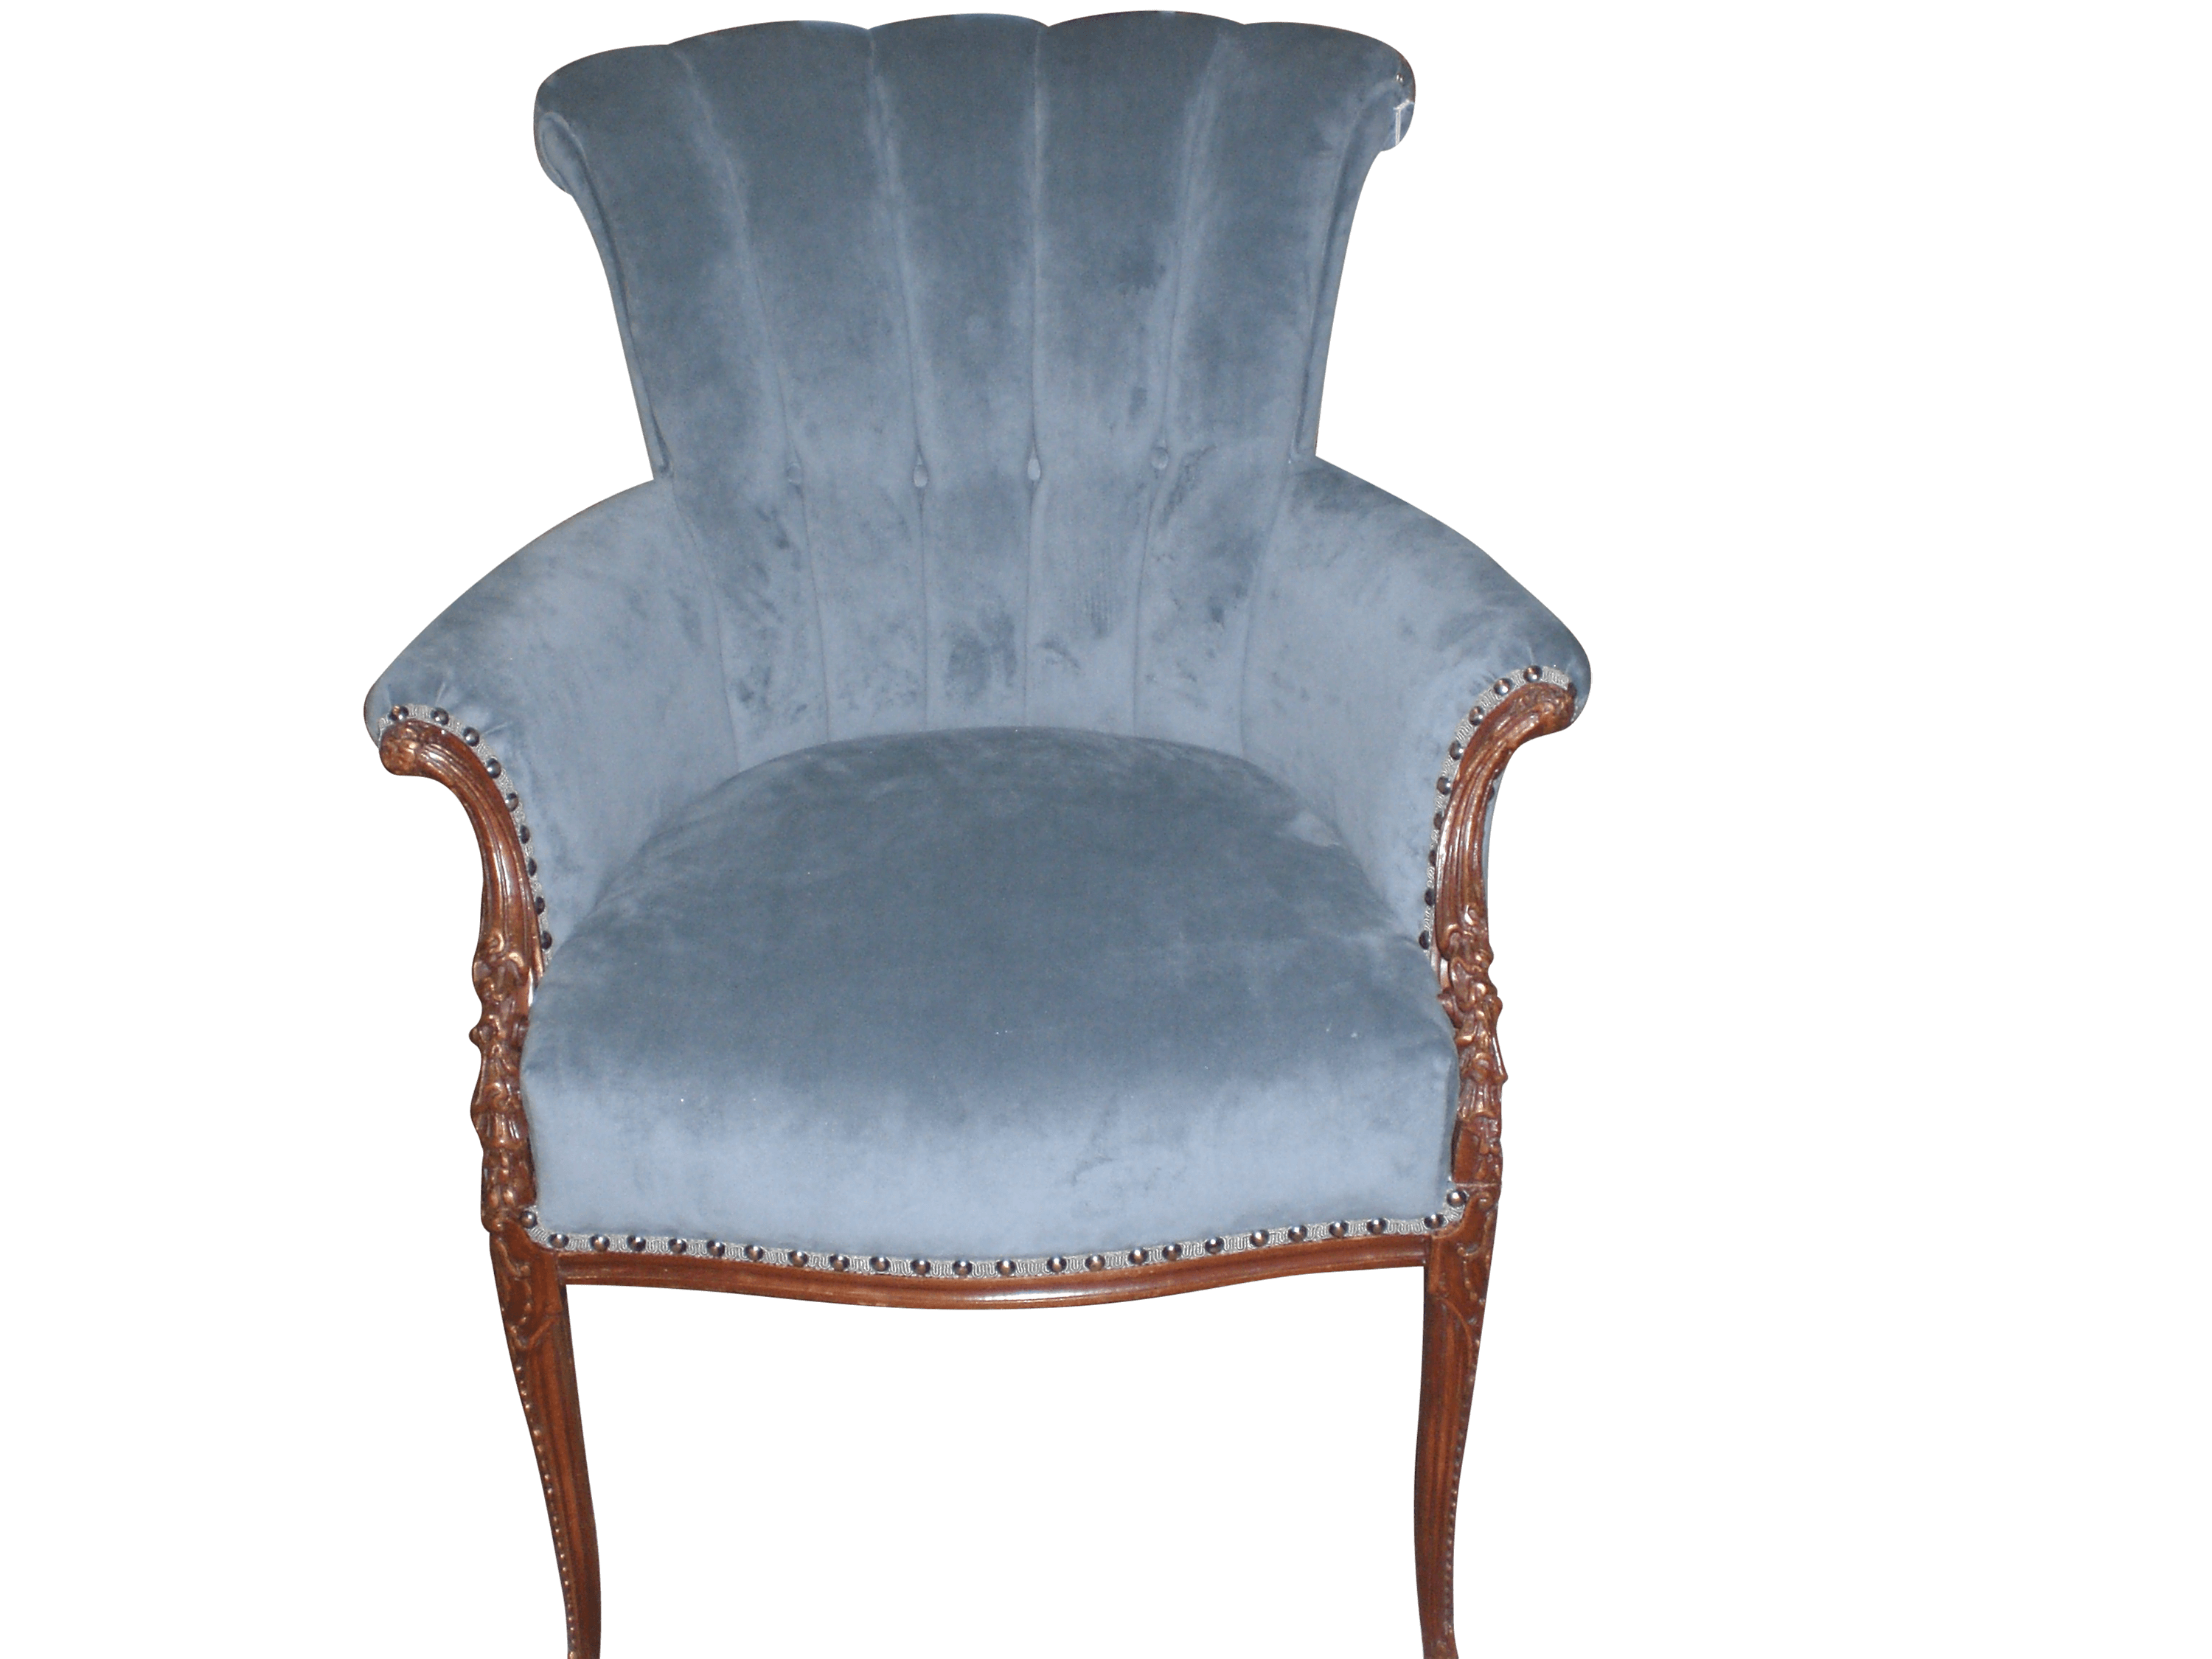 Re-upolstery of an fabric arm chair